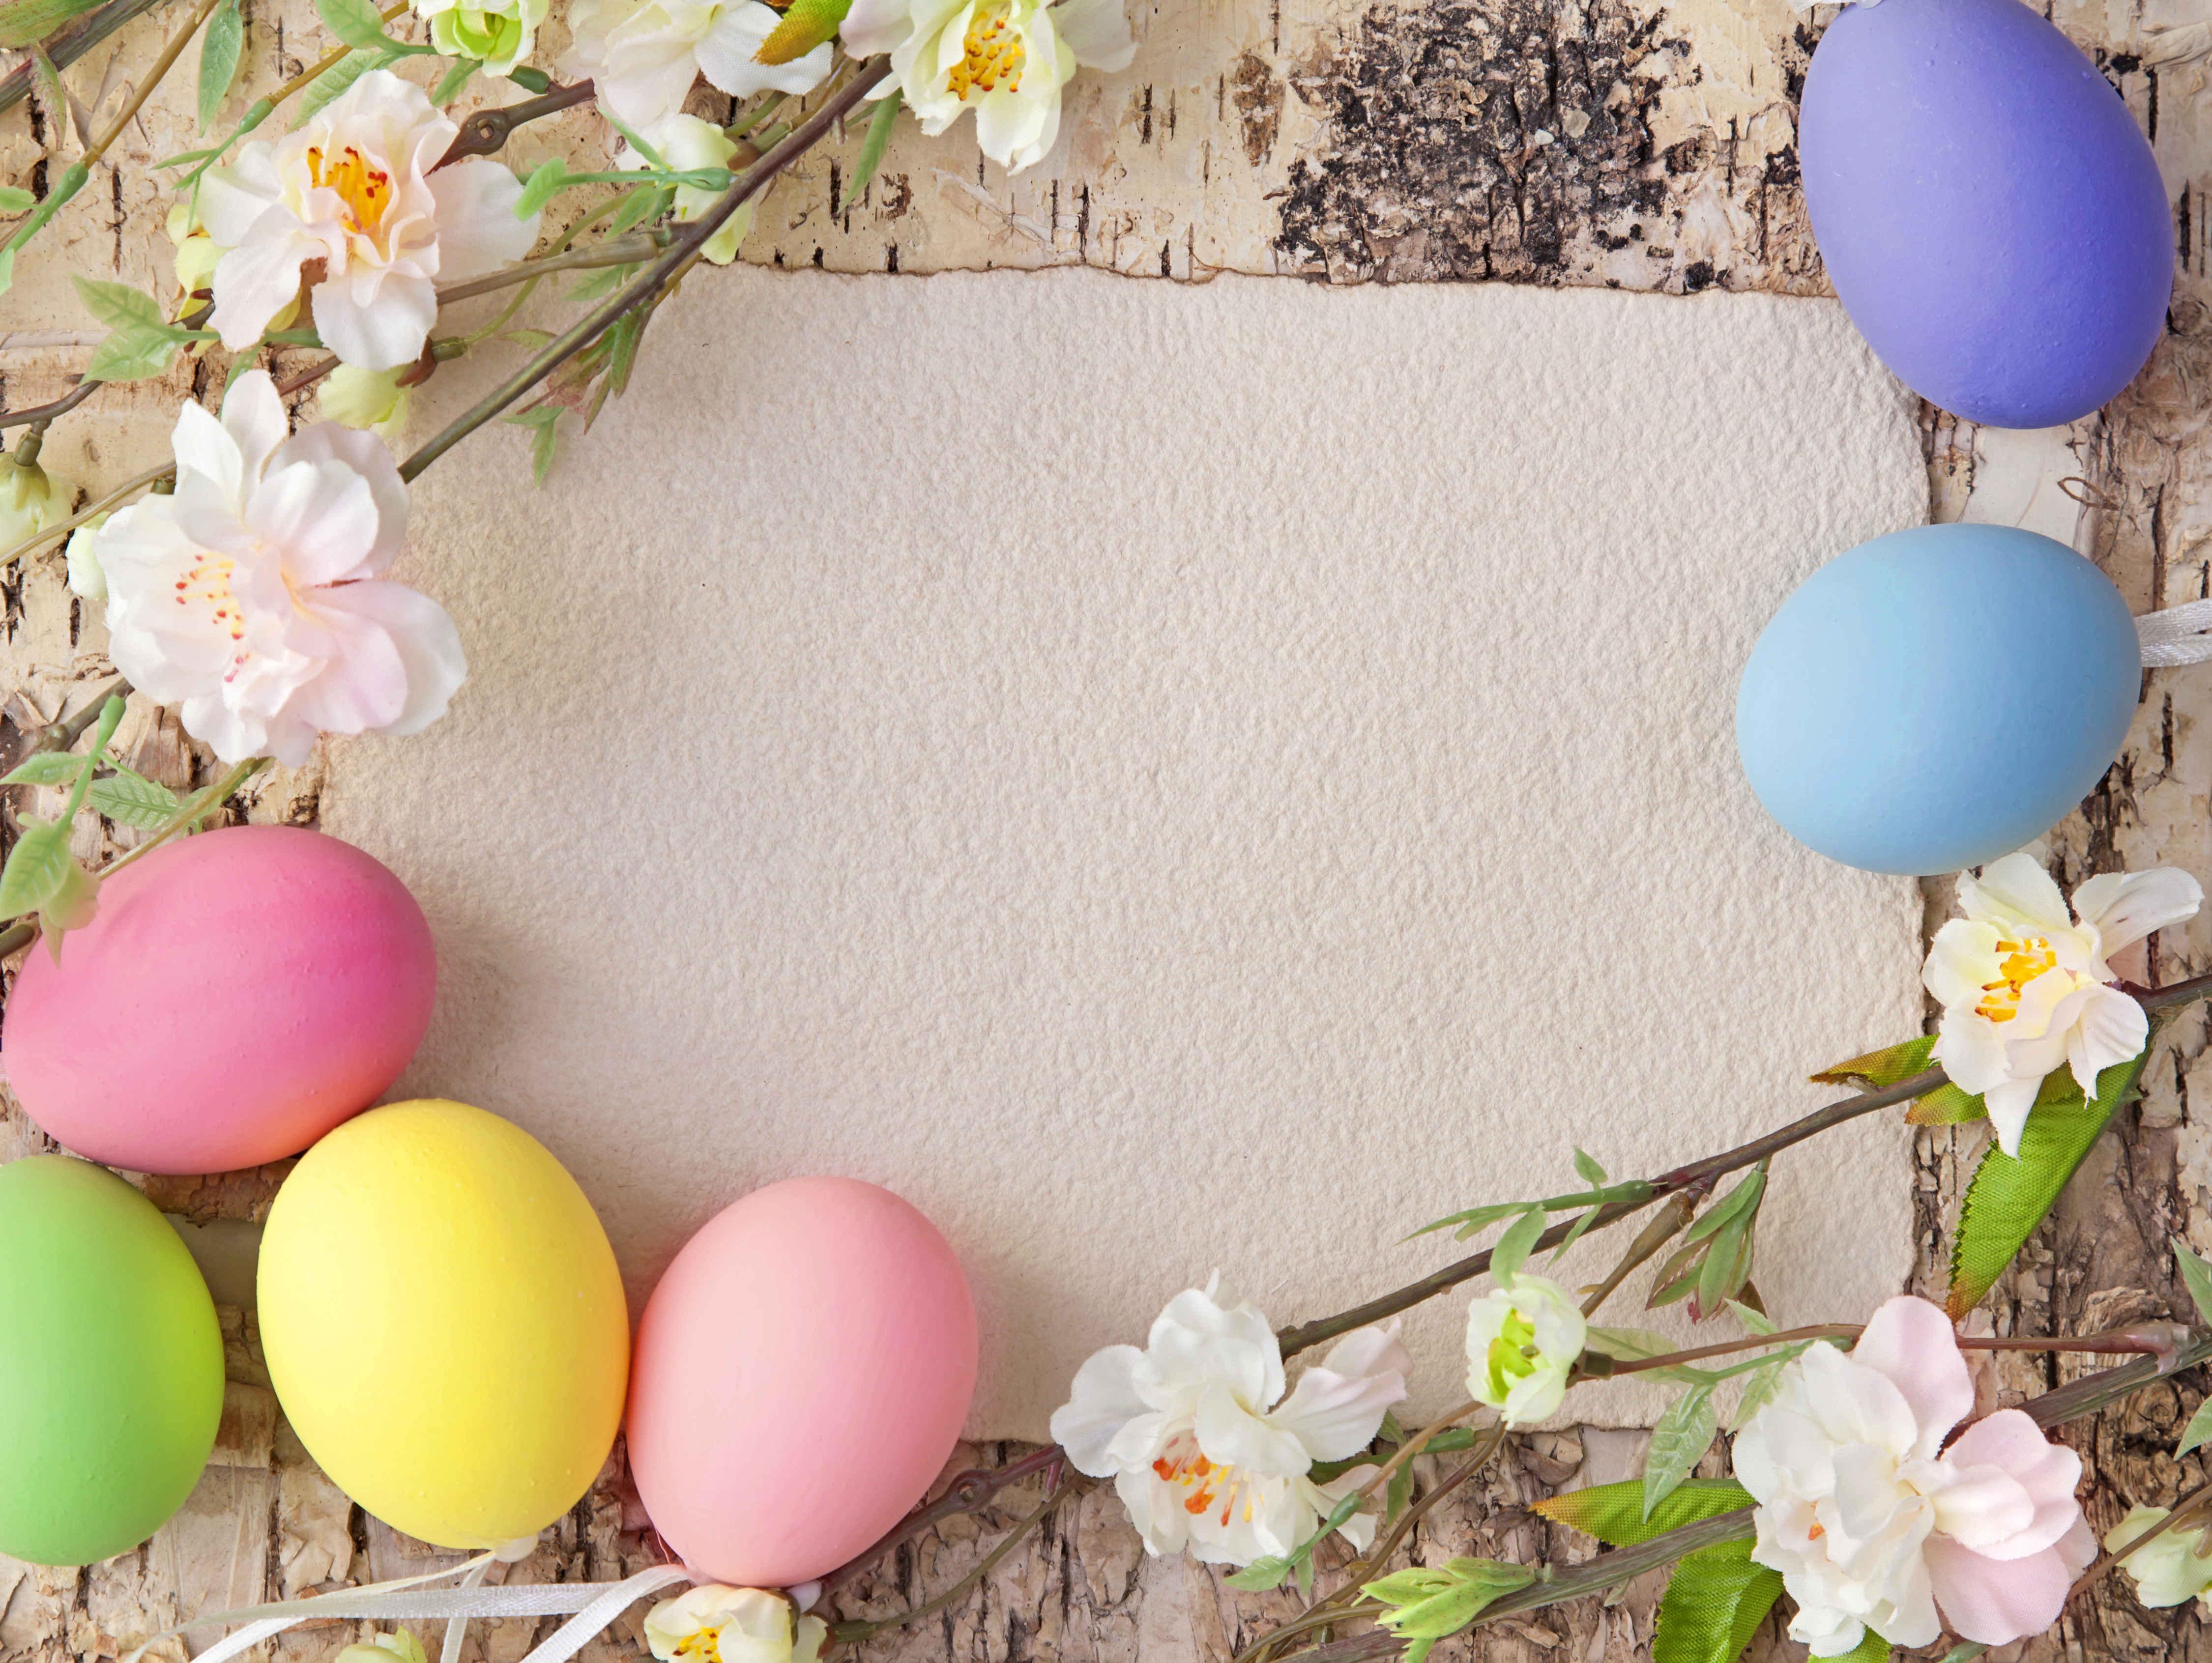 Easter Background with Eggs and Spring Branches Gallery 4500x3384